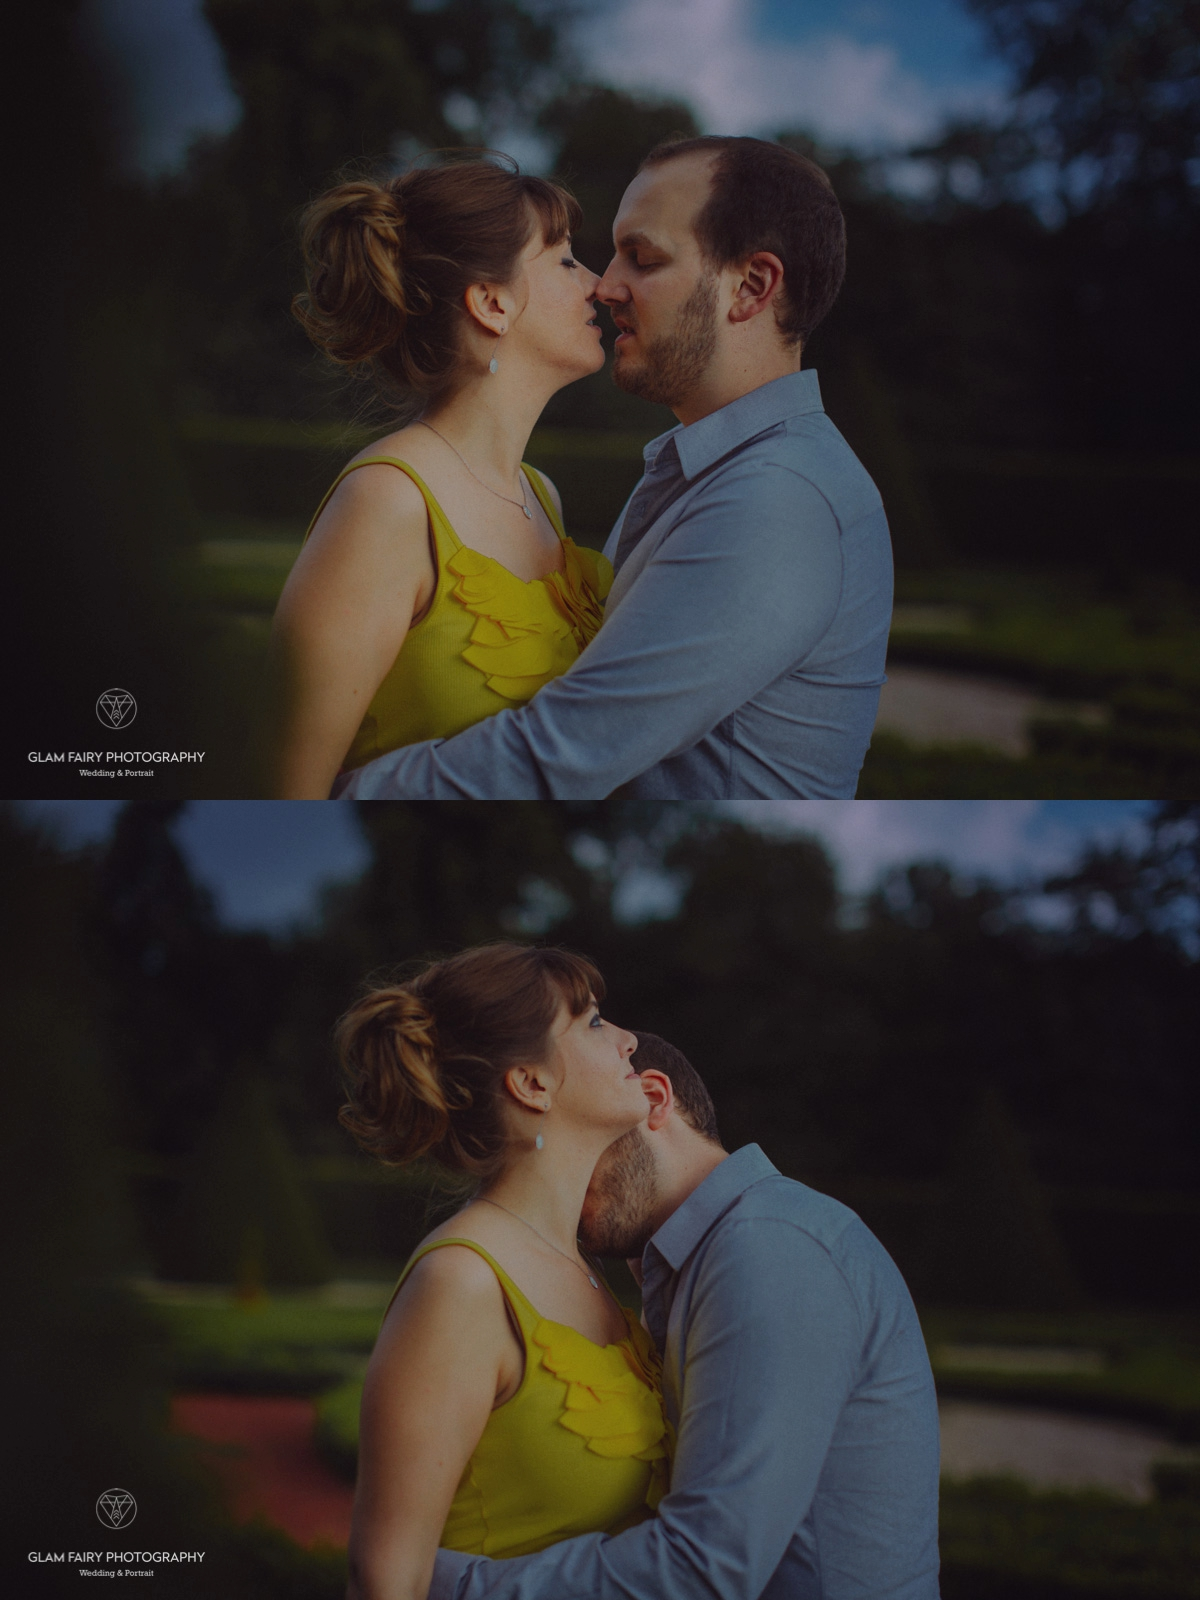 glamfairyphotography-seance-photo-couple-parc-de-sceaux-ophelie_0012